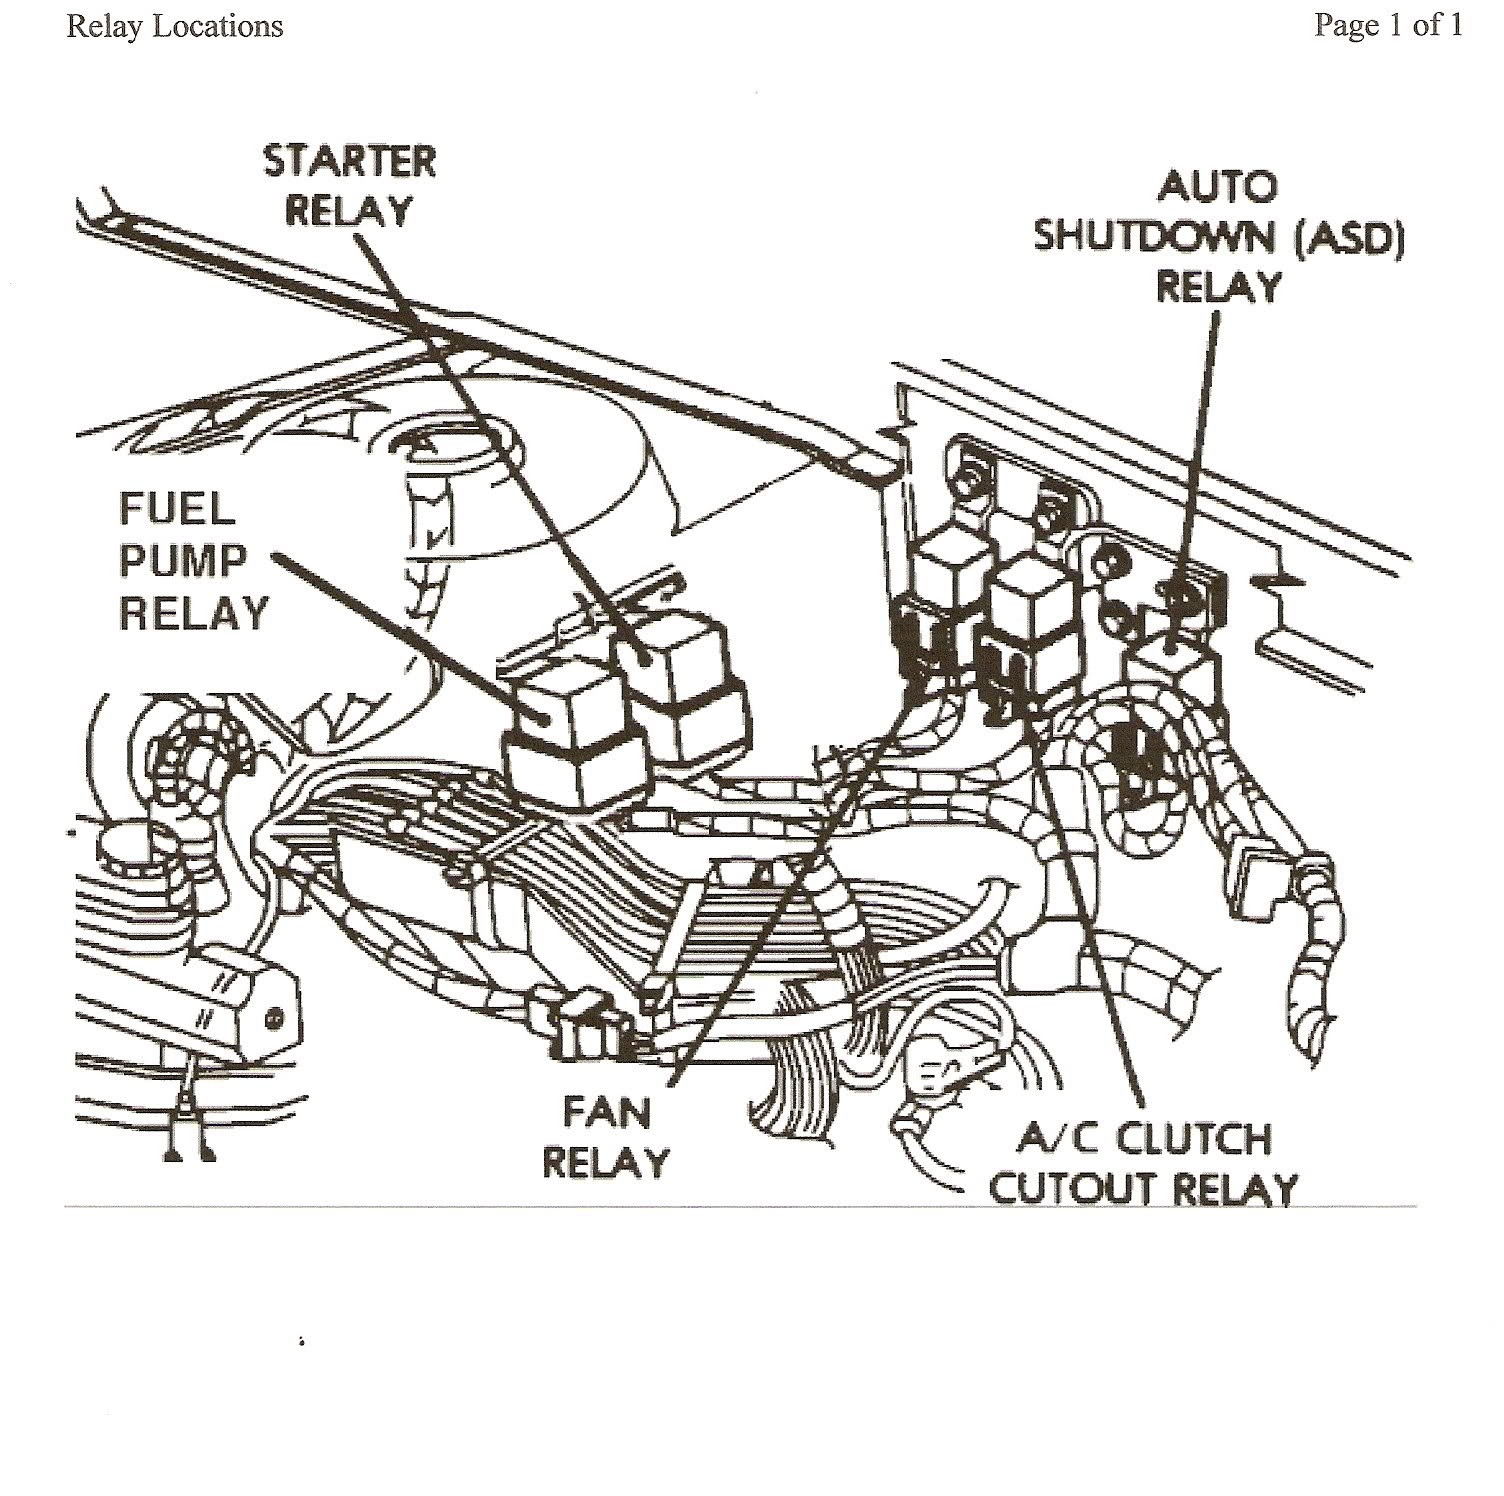 Wiring Diagram 2007 Chrysler Sliding Door Chrysler Engine